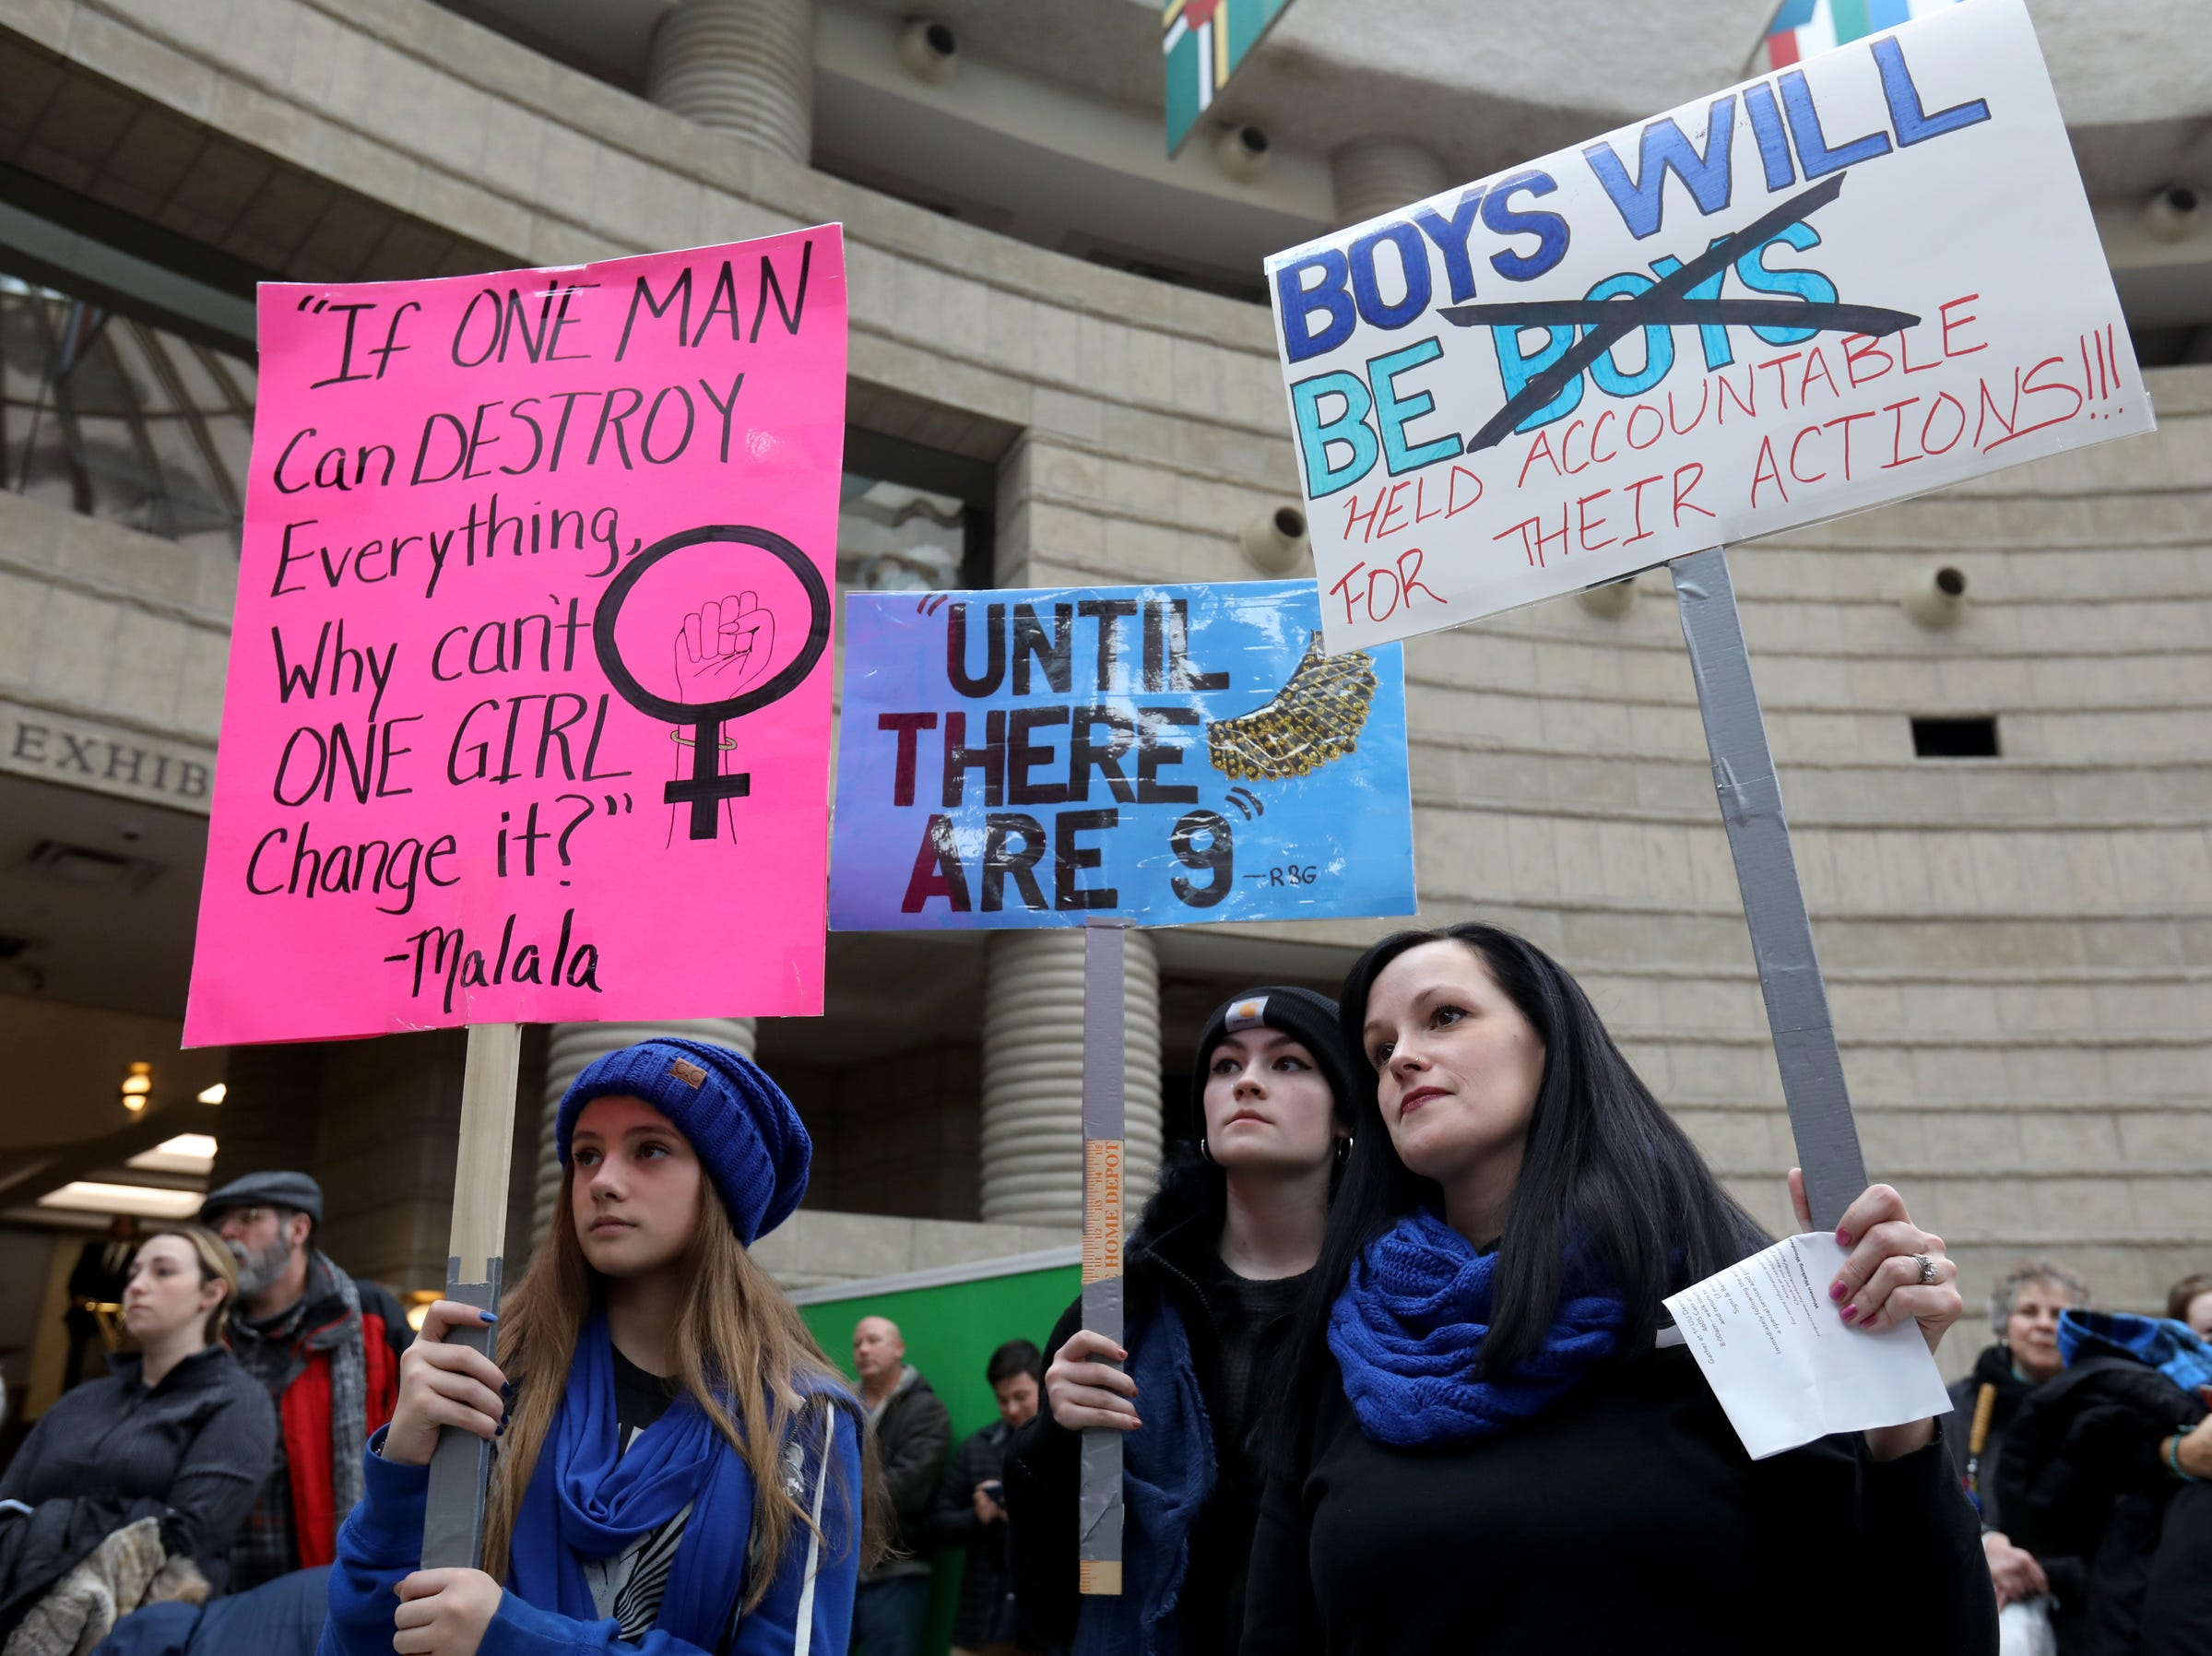 Women's March rally in Detroit advocates unity